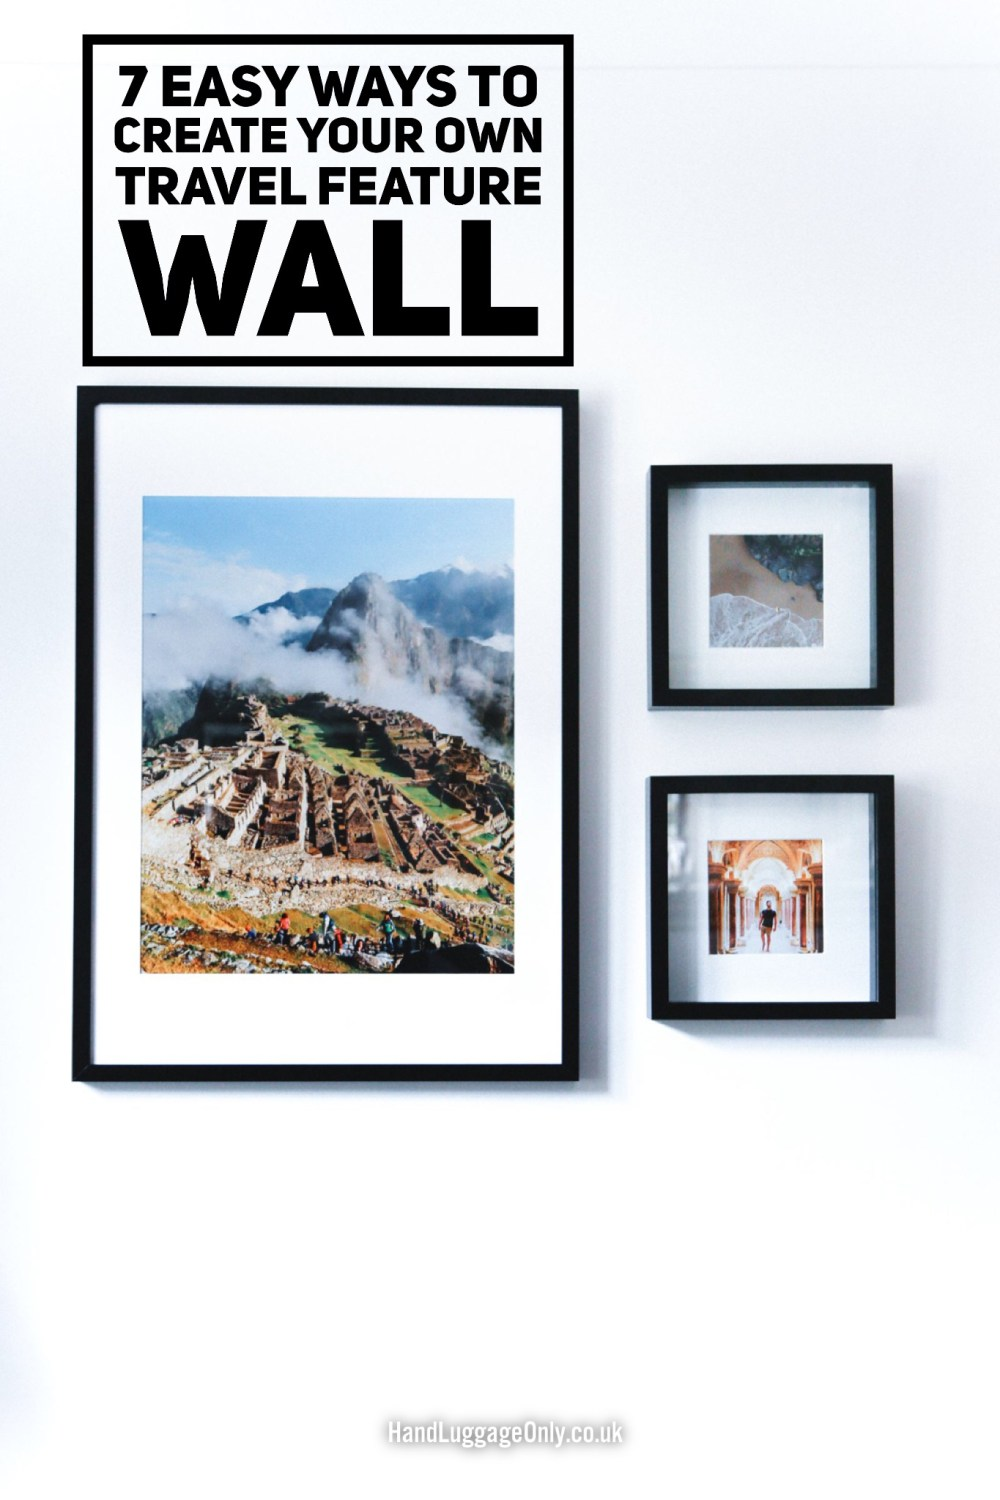 Here's A Really Fun Way To Show Off Your Travel Photos (1)